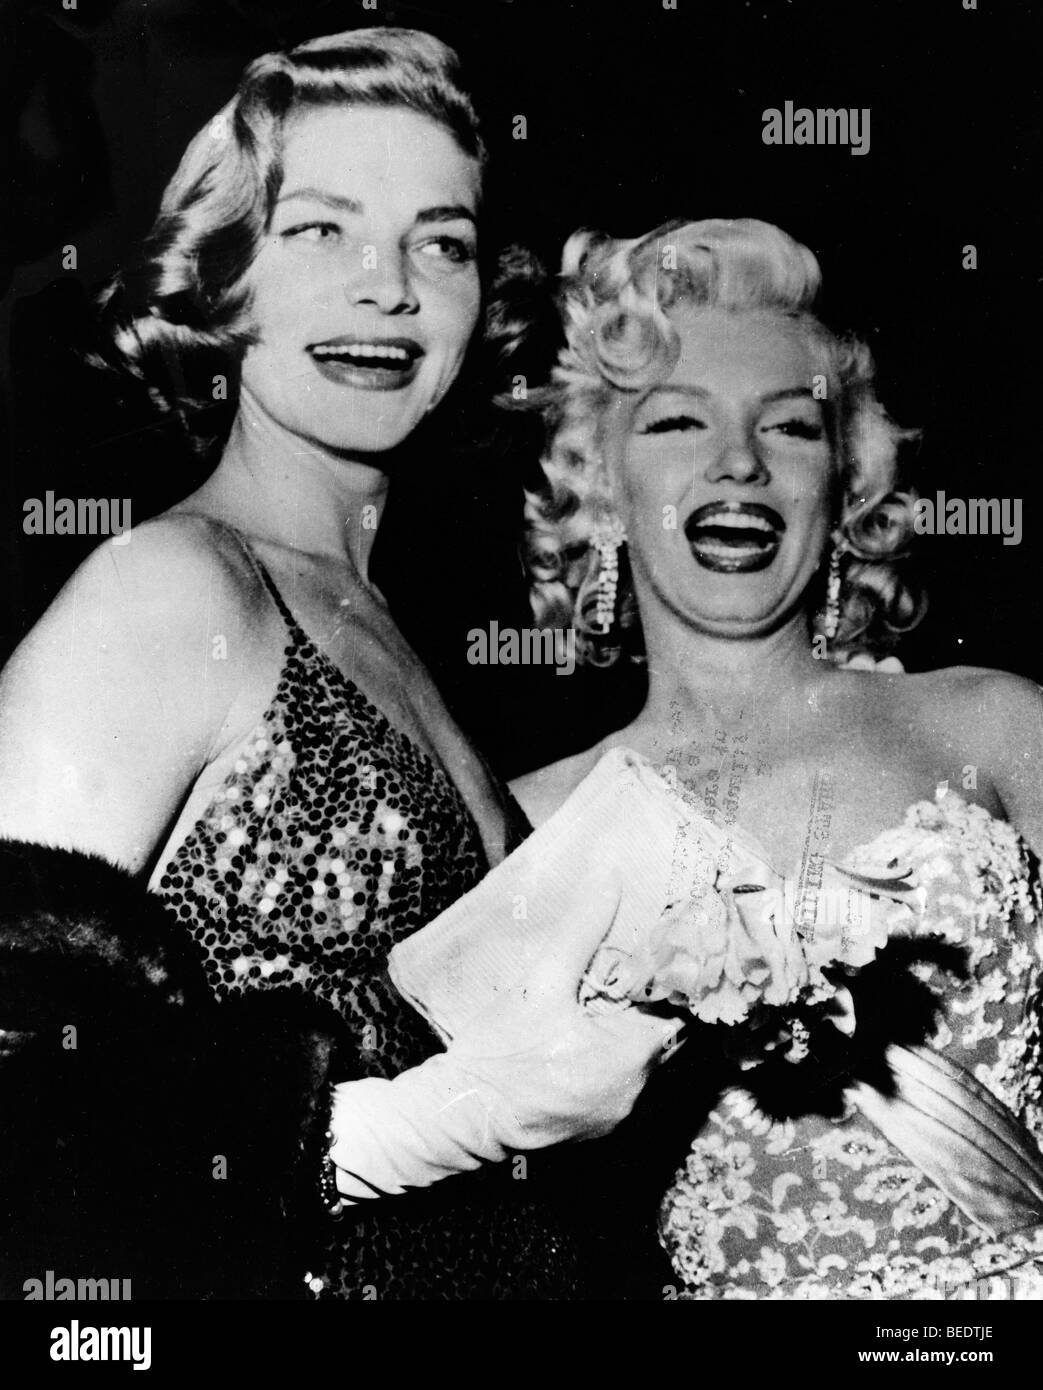 Starlets Marilyn Monroe and Lauren Bacall - Stock Image